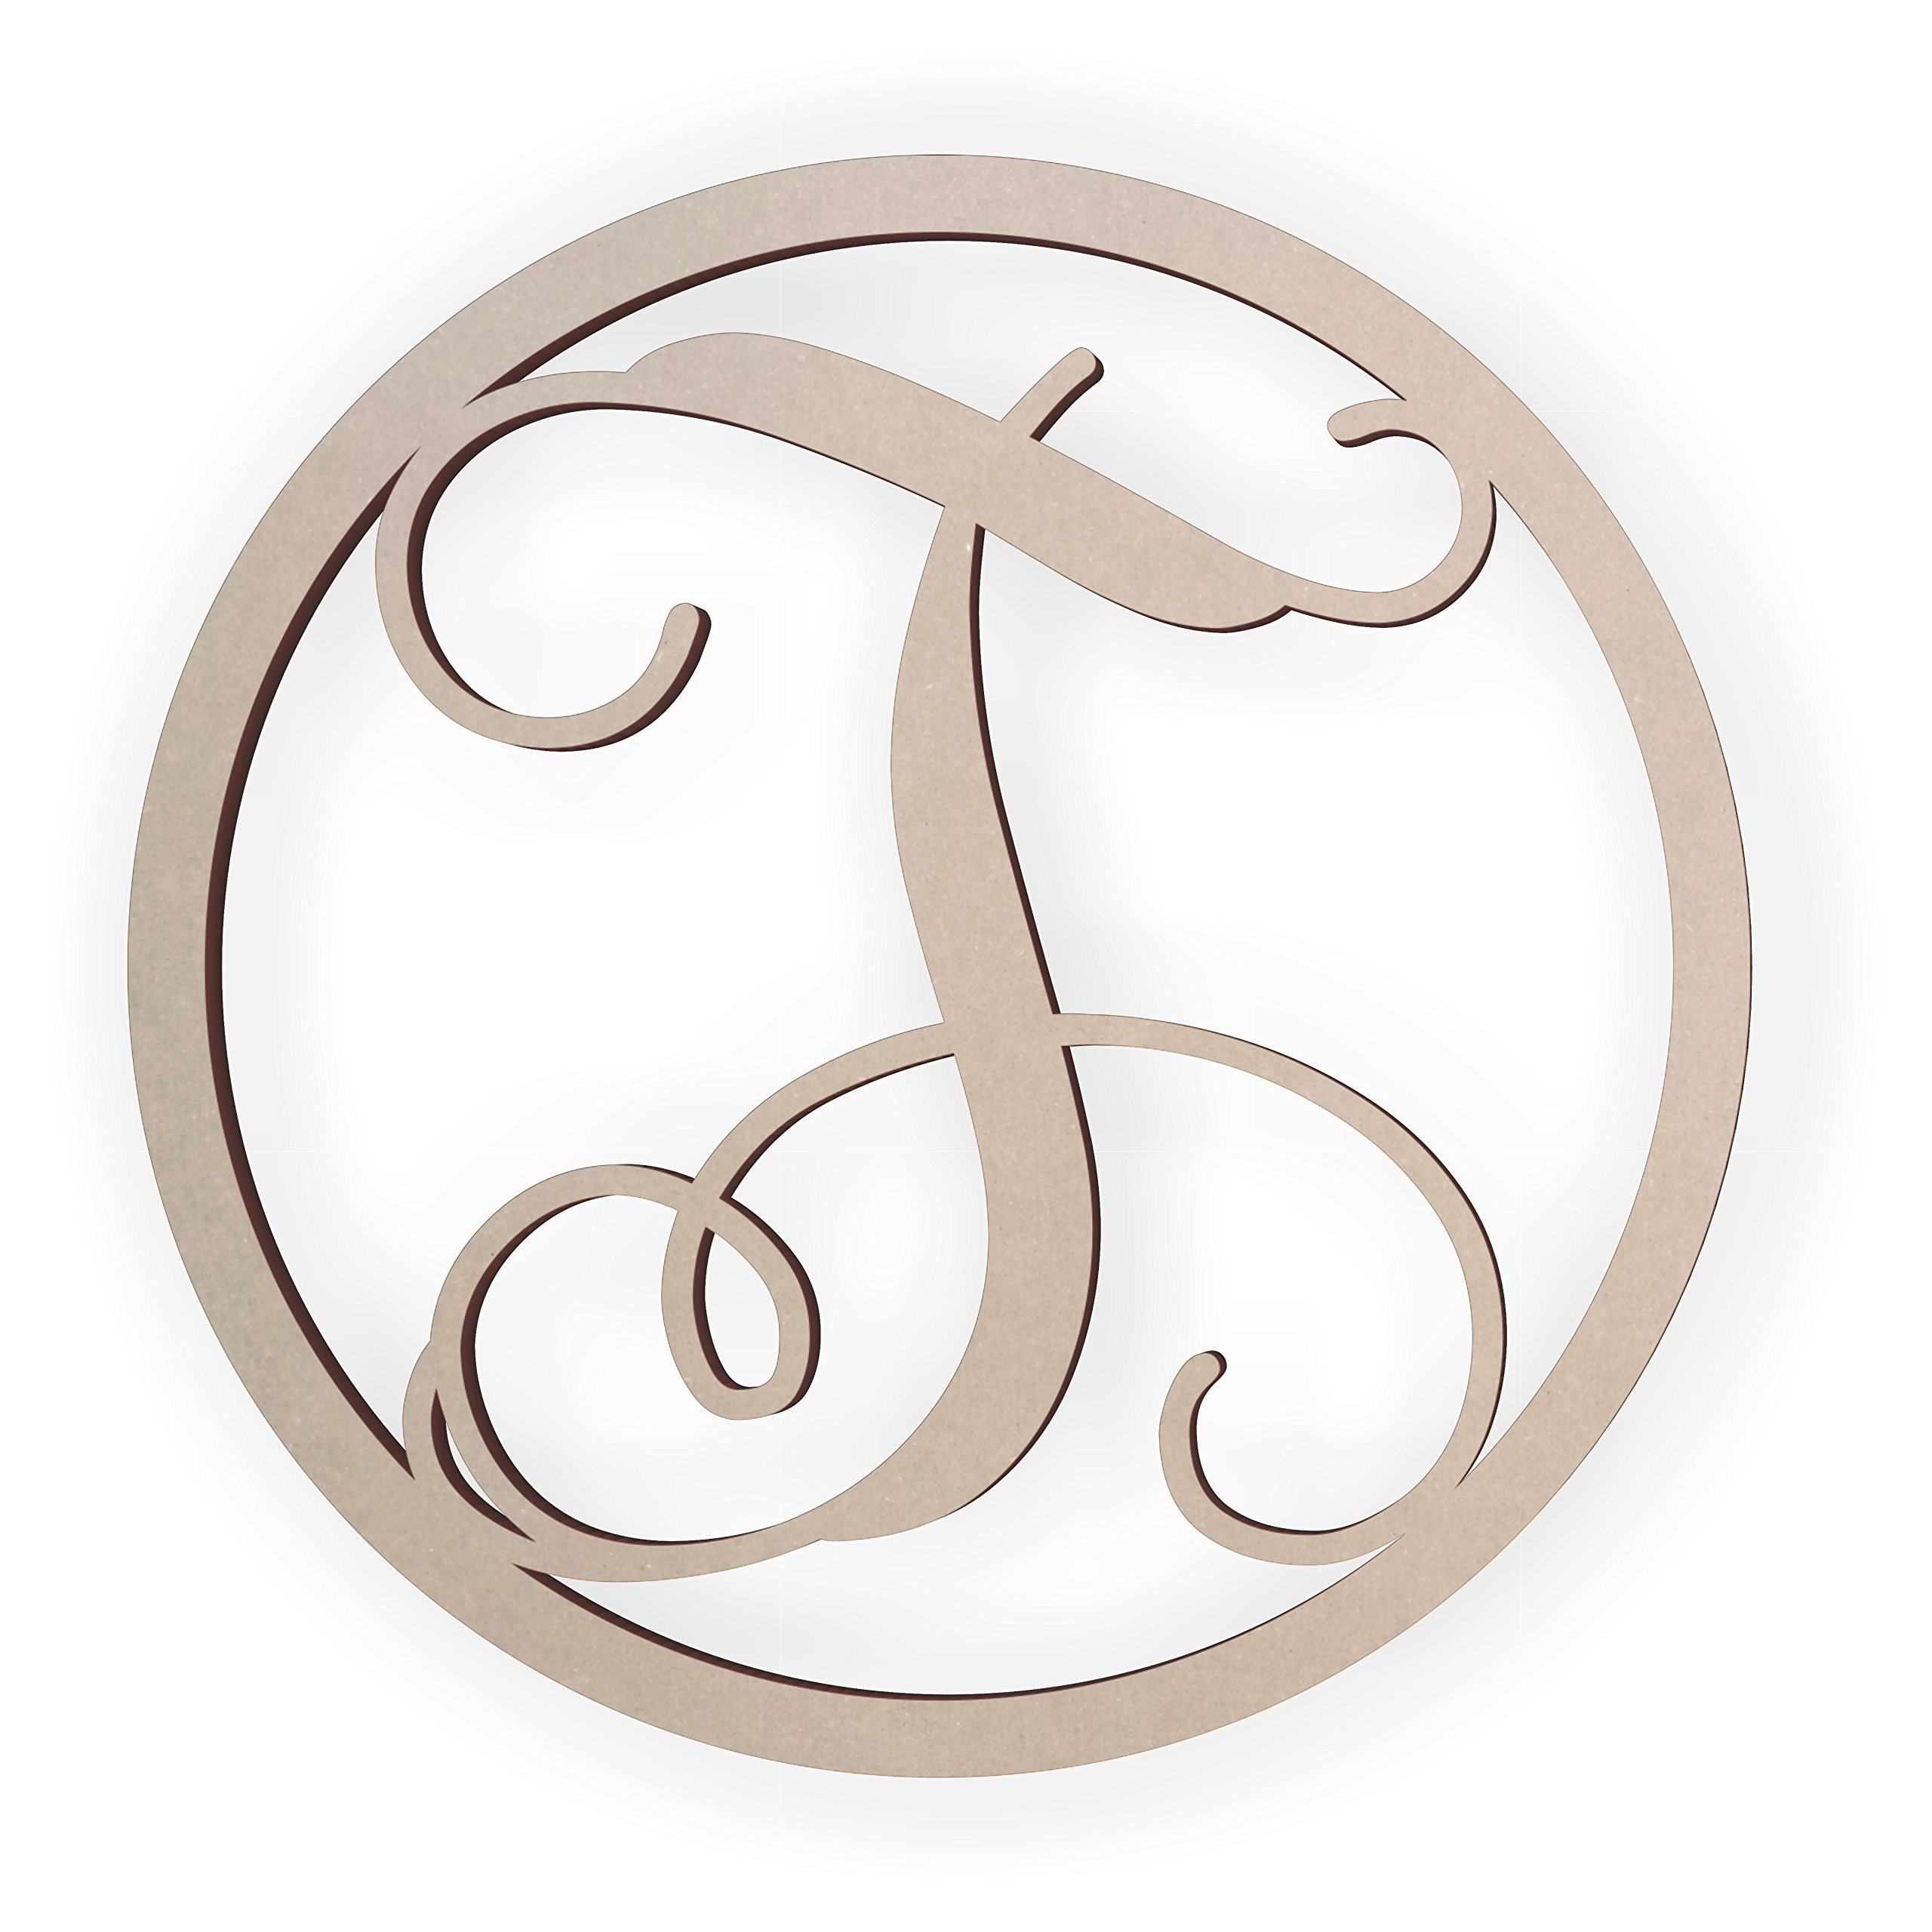 Jess and Jessica Wooden Letter T, Wooden Monogram Wall Hanging, Large Wooden Letters, Cursive Wood Letter